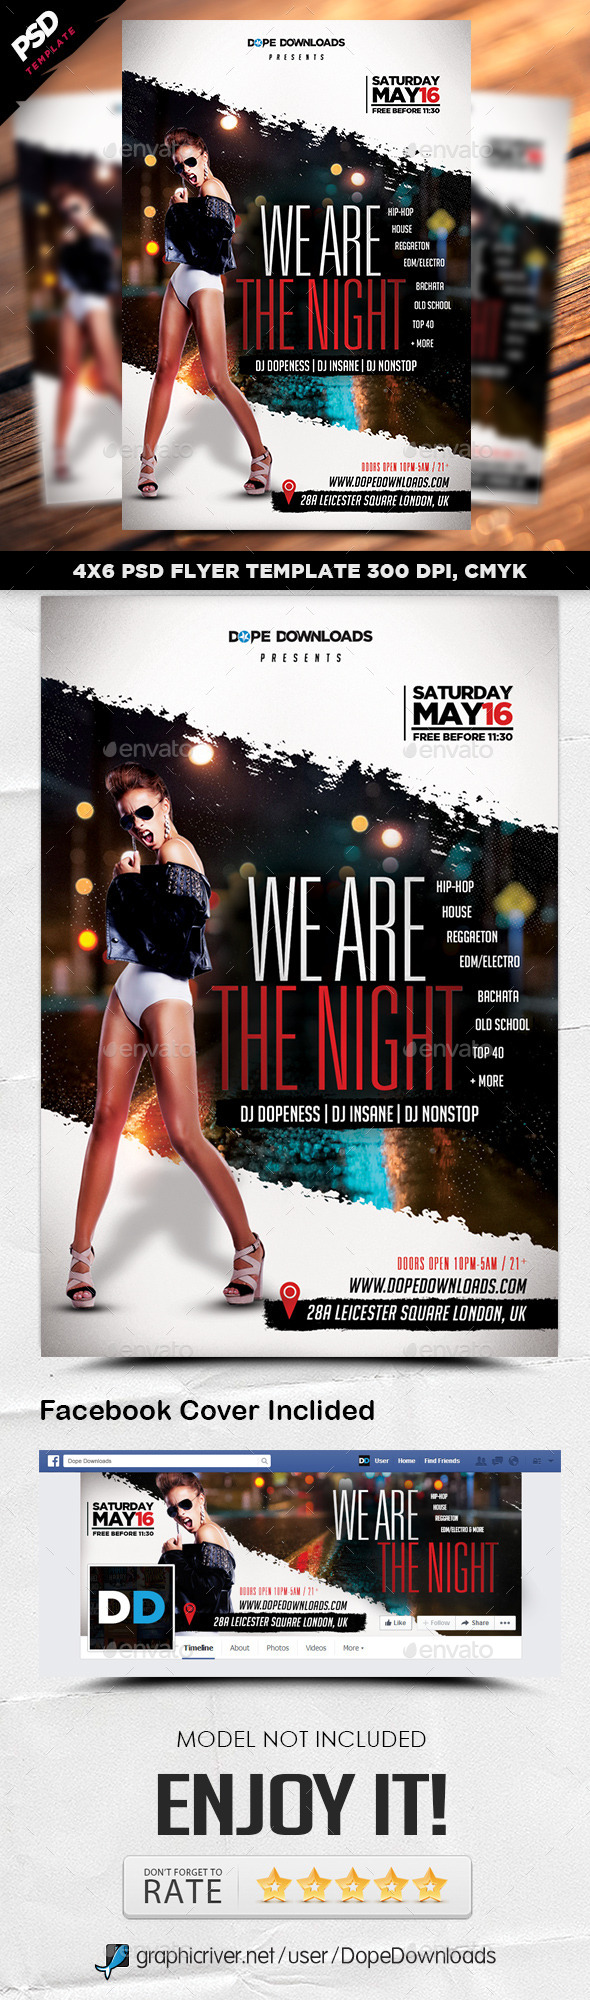 GraphicRiver We Are The Night Flyer Template 11020800